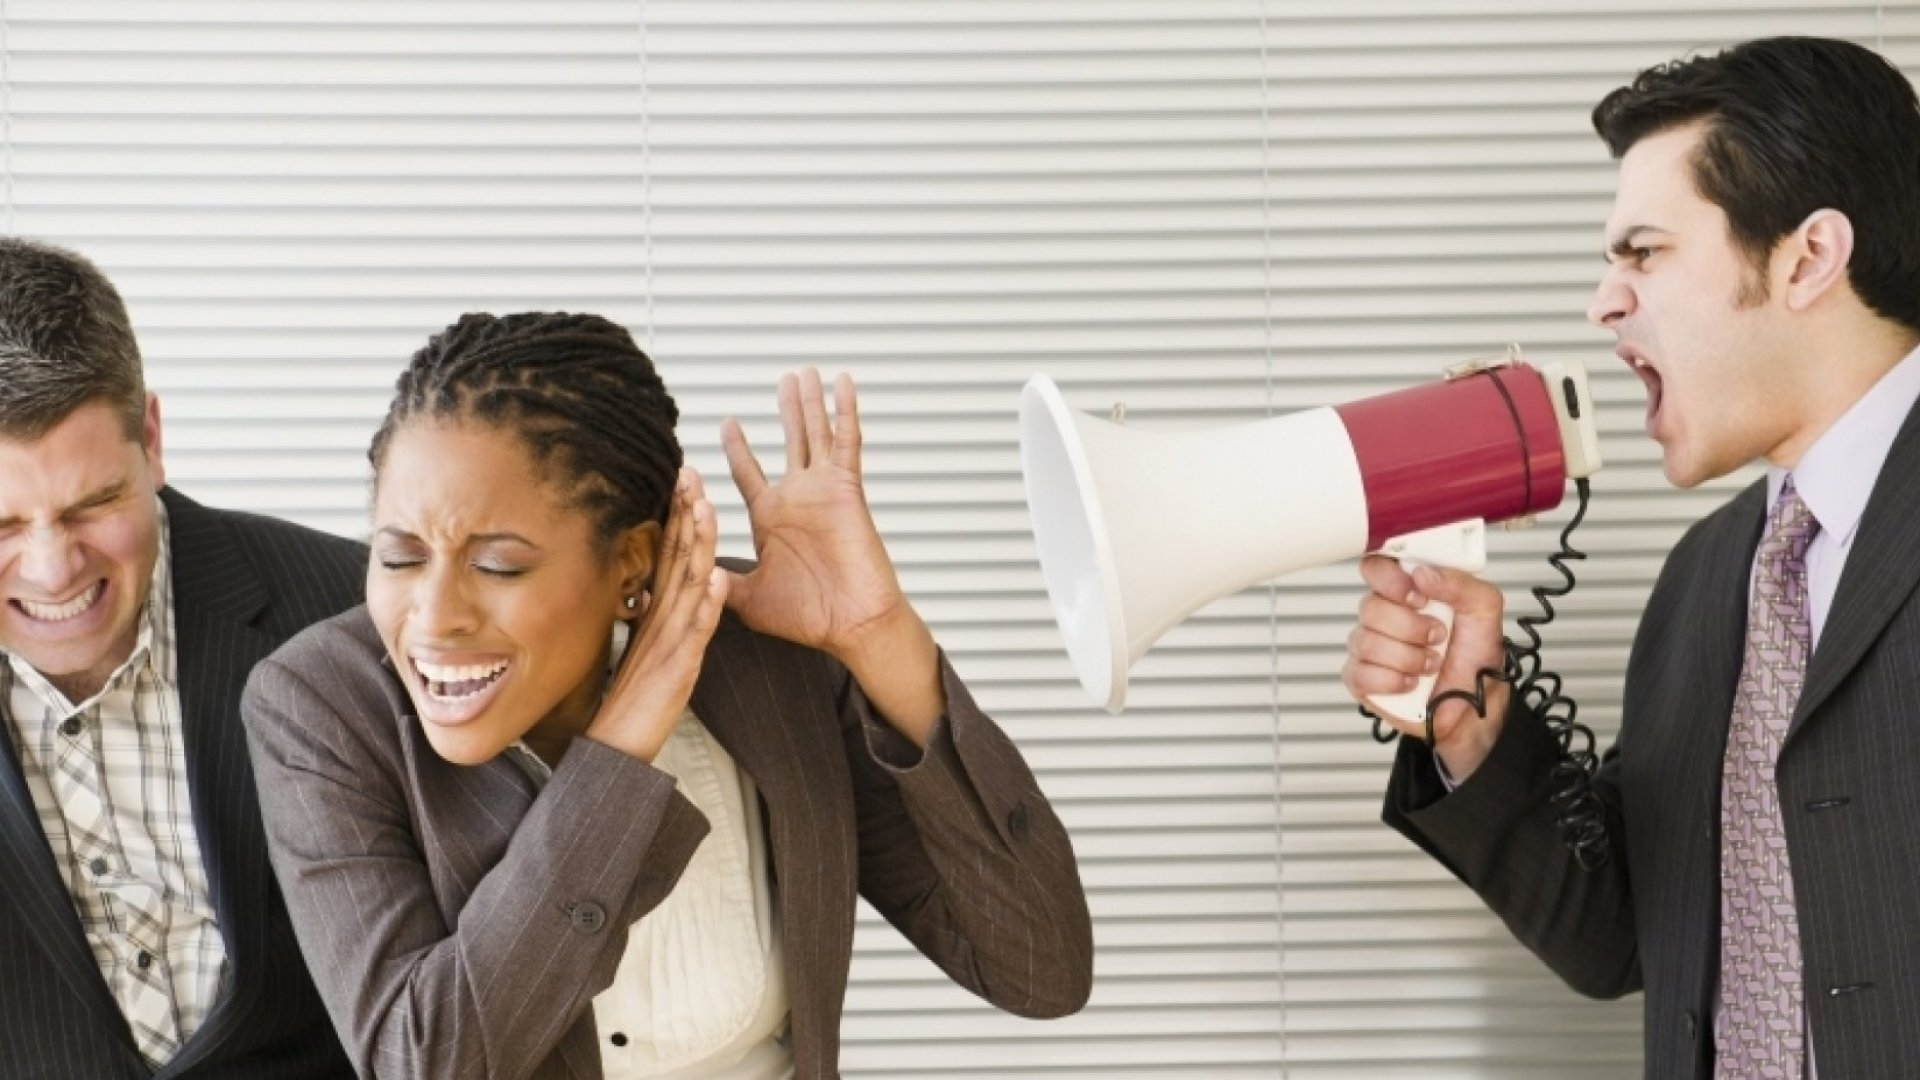 How to Deal With a Bossy Co-Worker